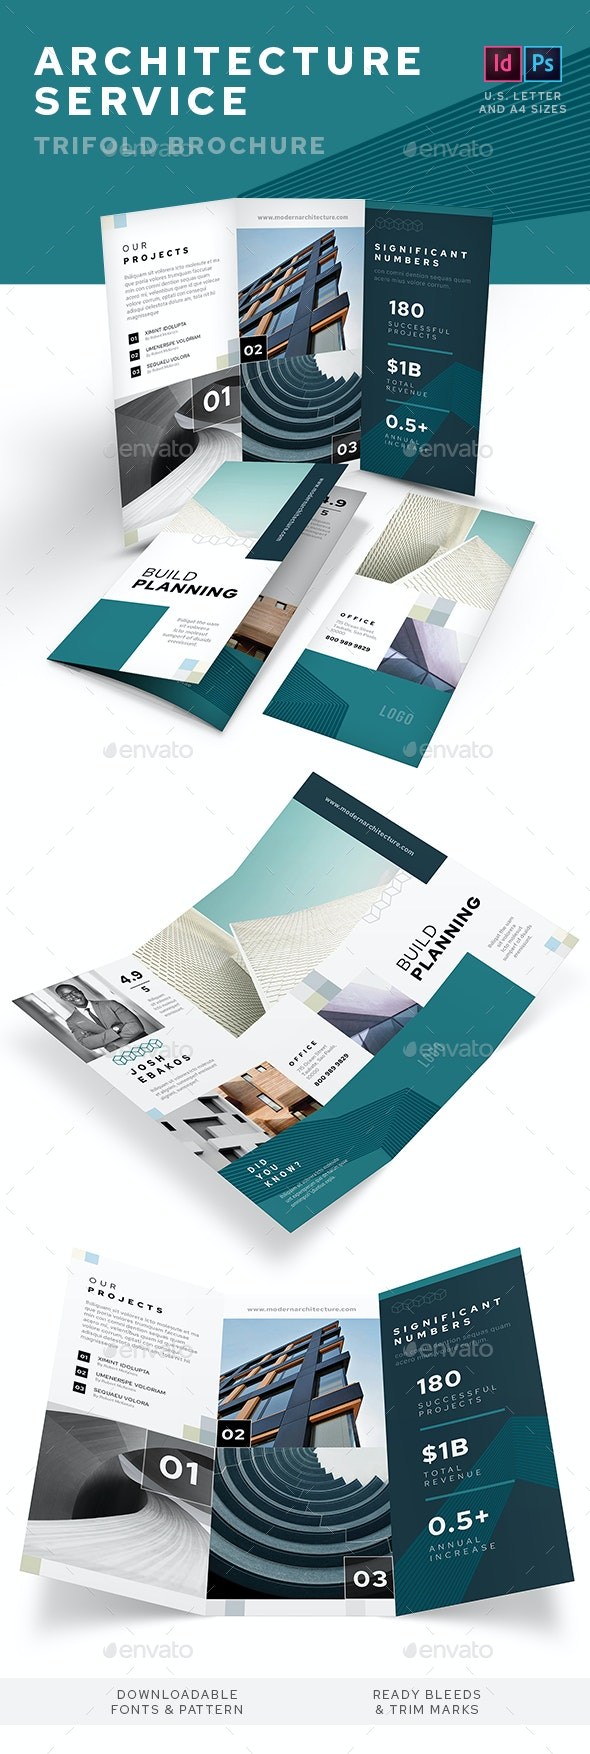 Architecture Service Trifold Brochure - Informational Brochures